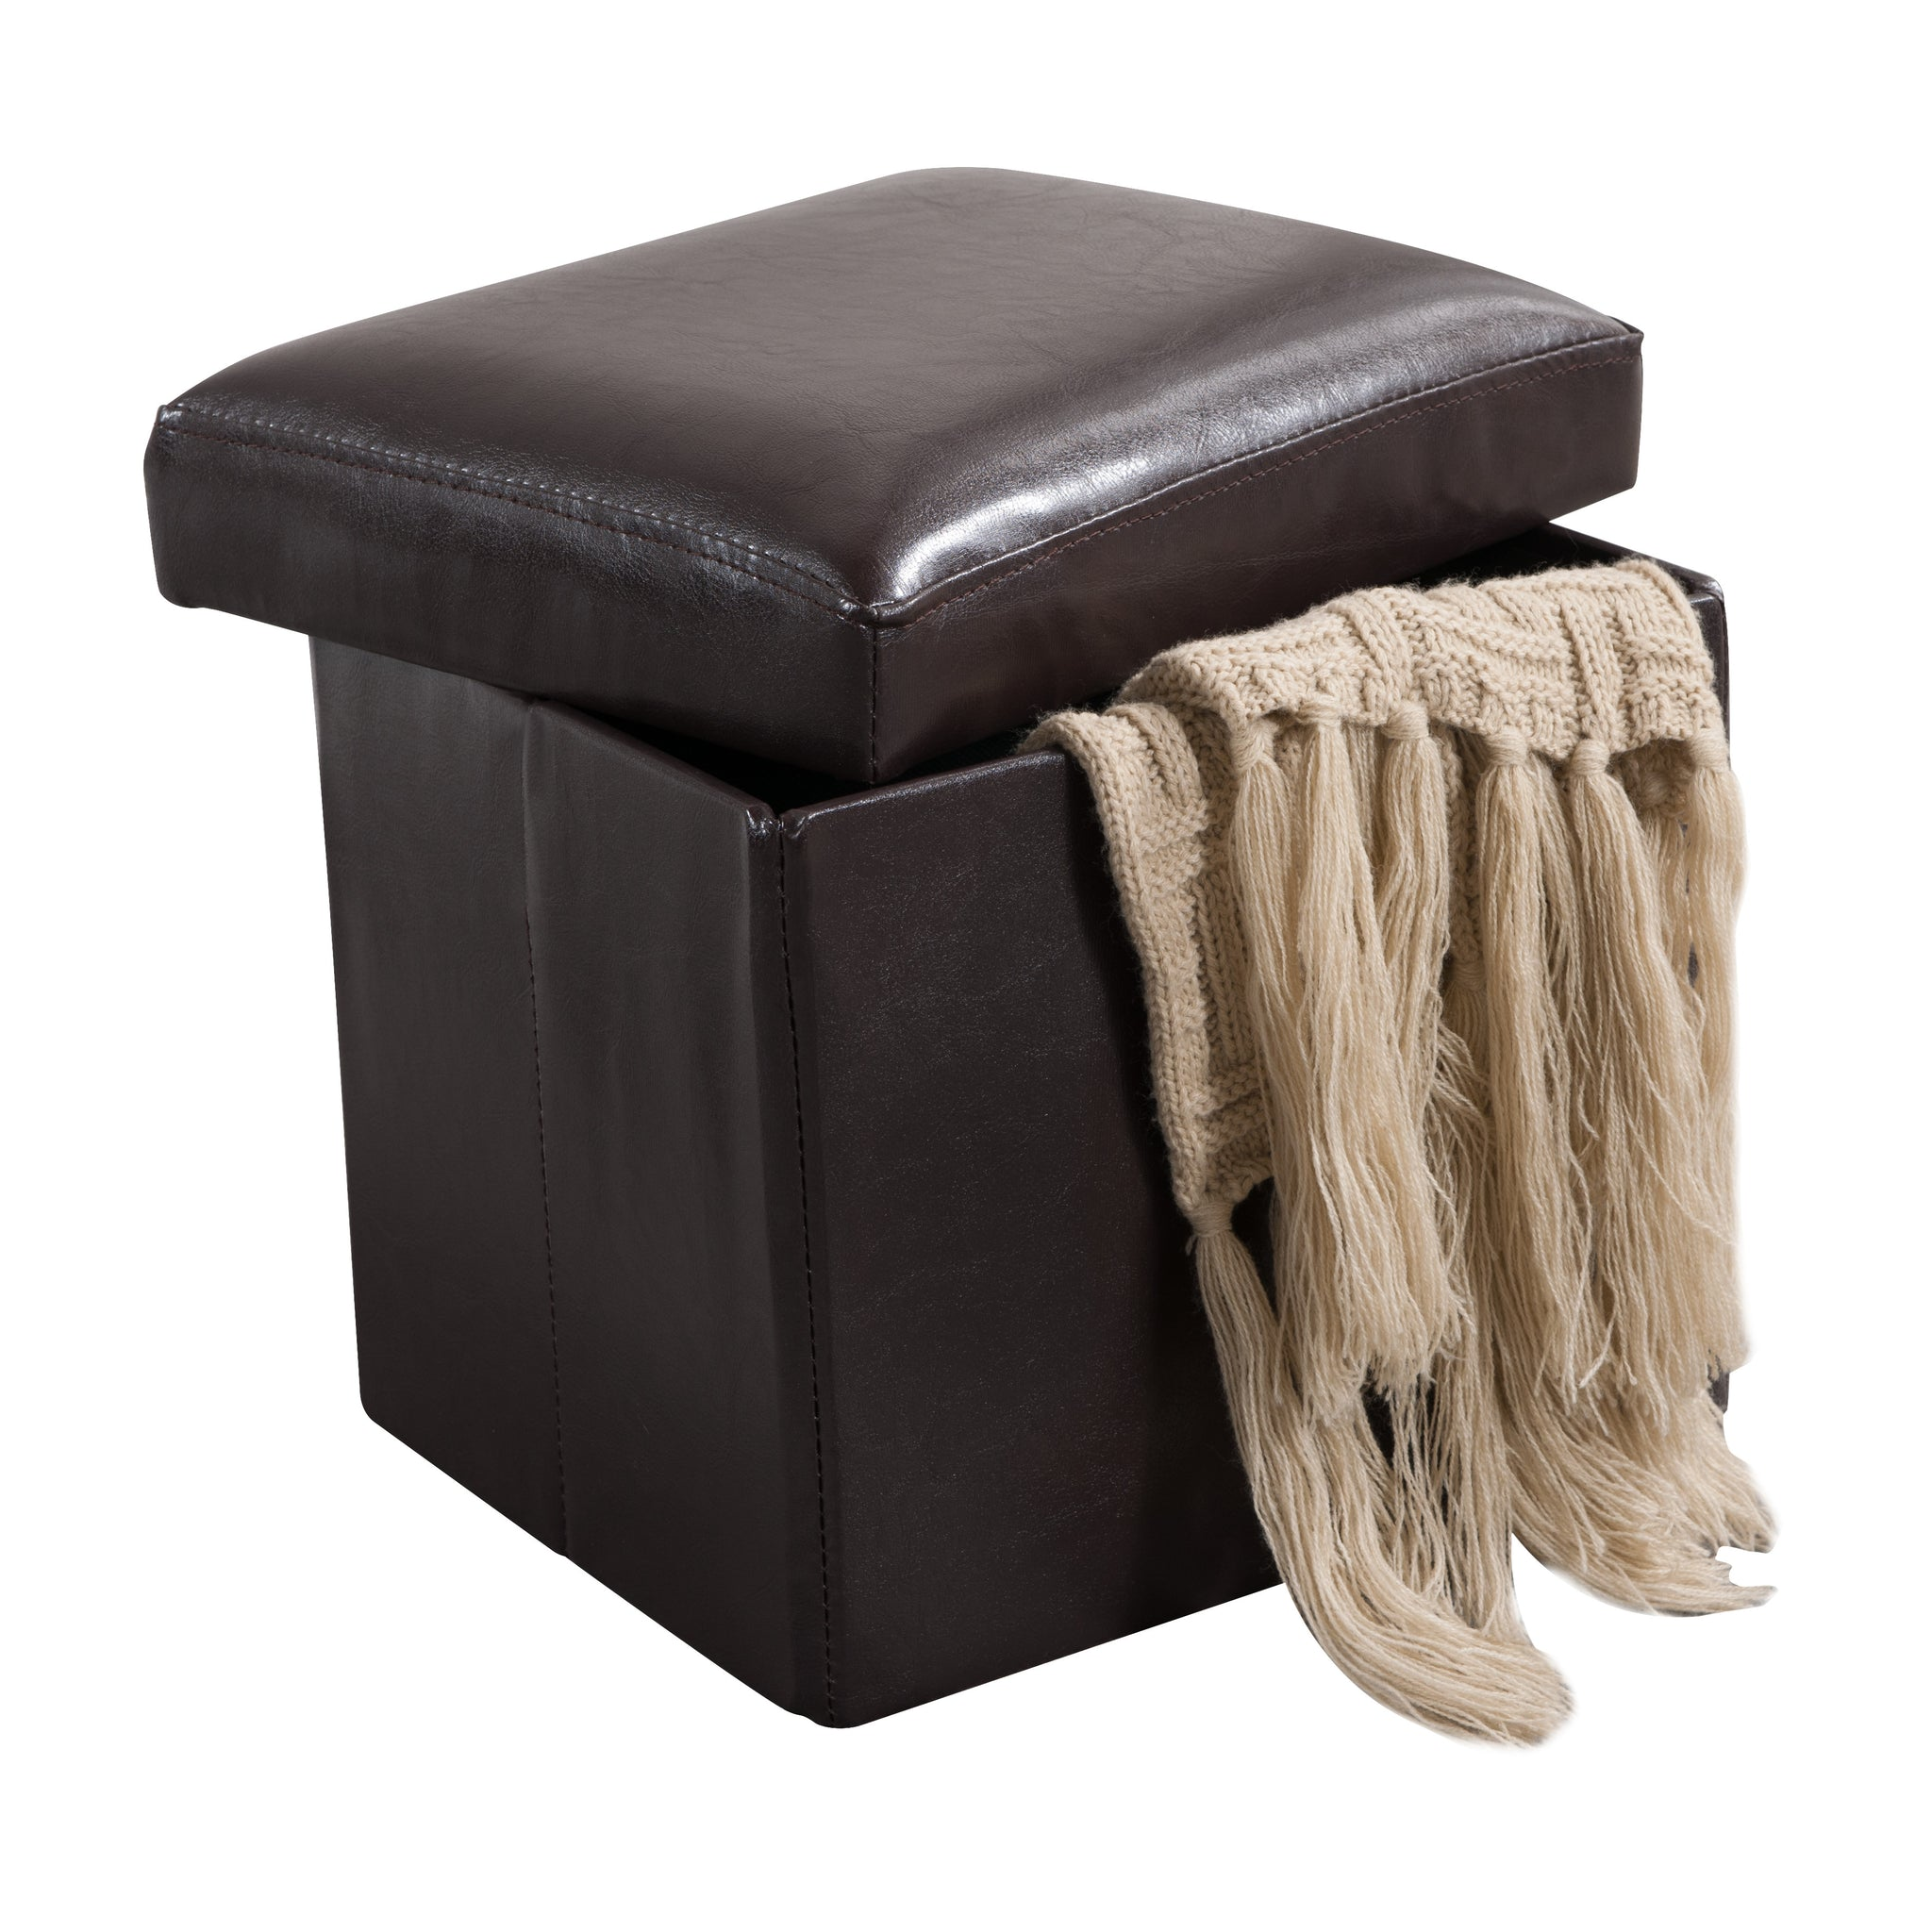 Terrific Dark Brown Faux Leather Upholstered Rectangle Or Square Machost Co Dining Chair Design Ideas Machostcouk